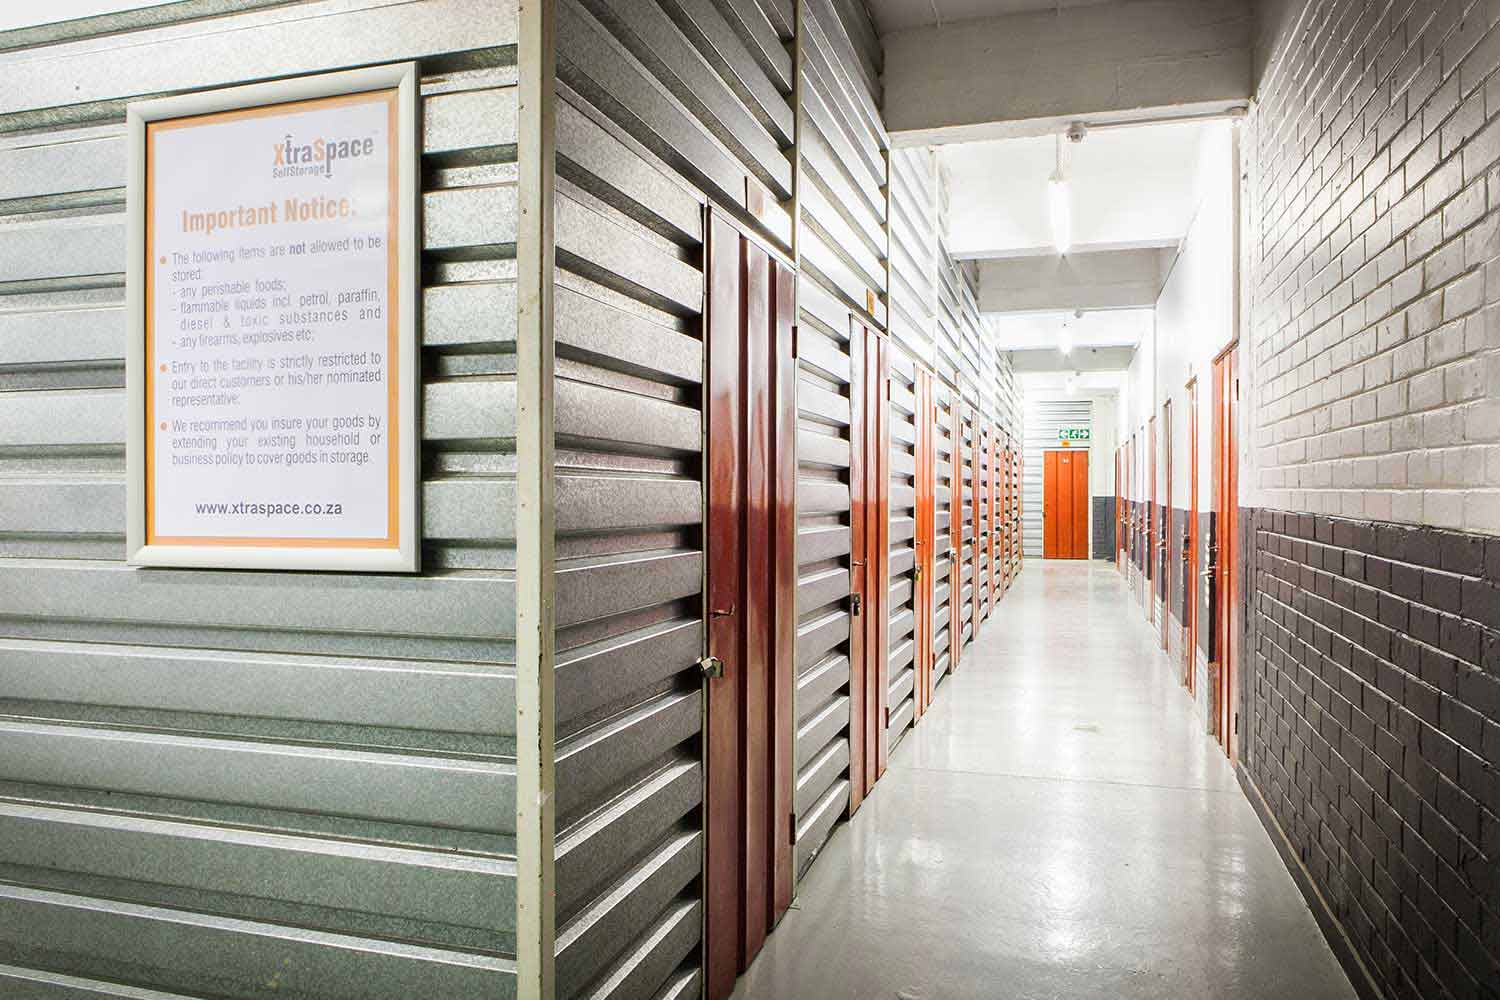 Self storage units at XtraSpace Johannesburg Central